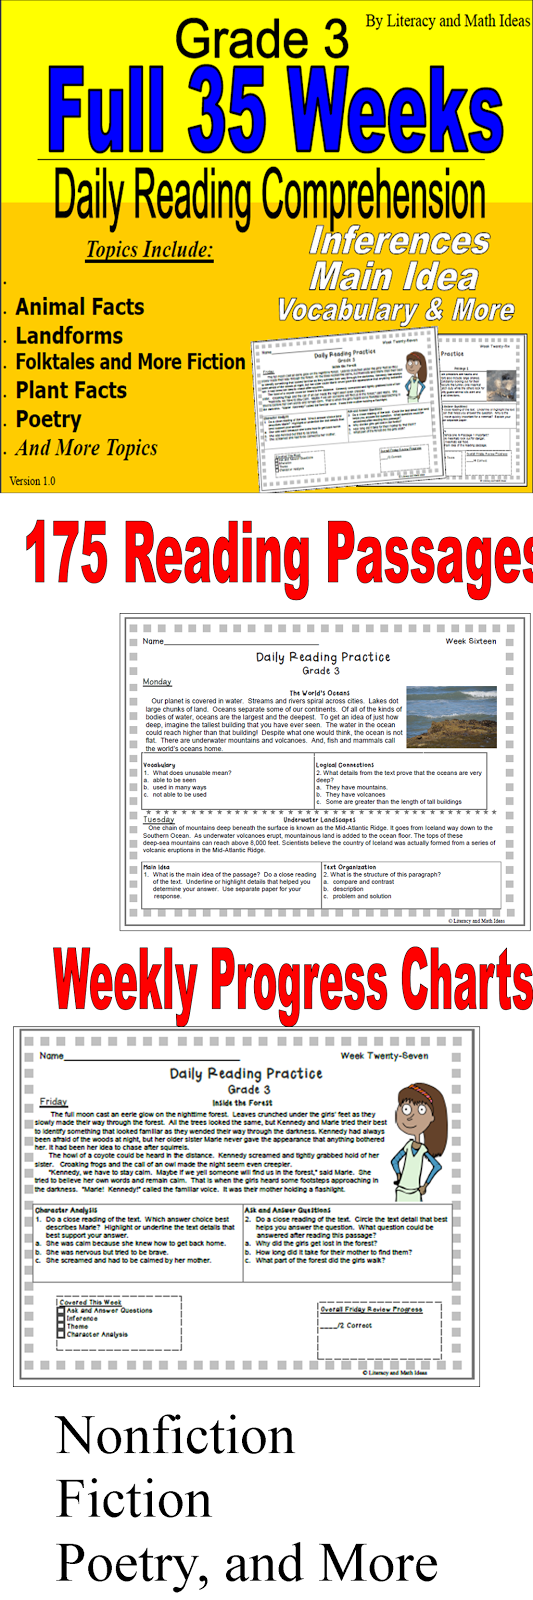 Grade 3 -- 35 Full Weeks of Daily Practice